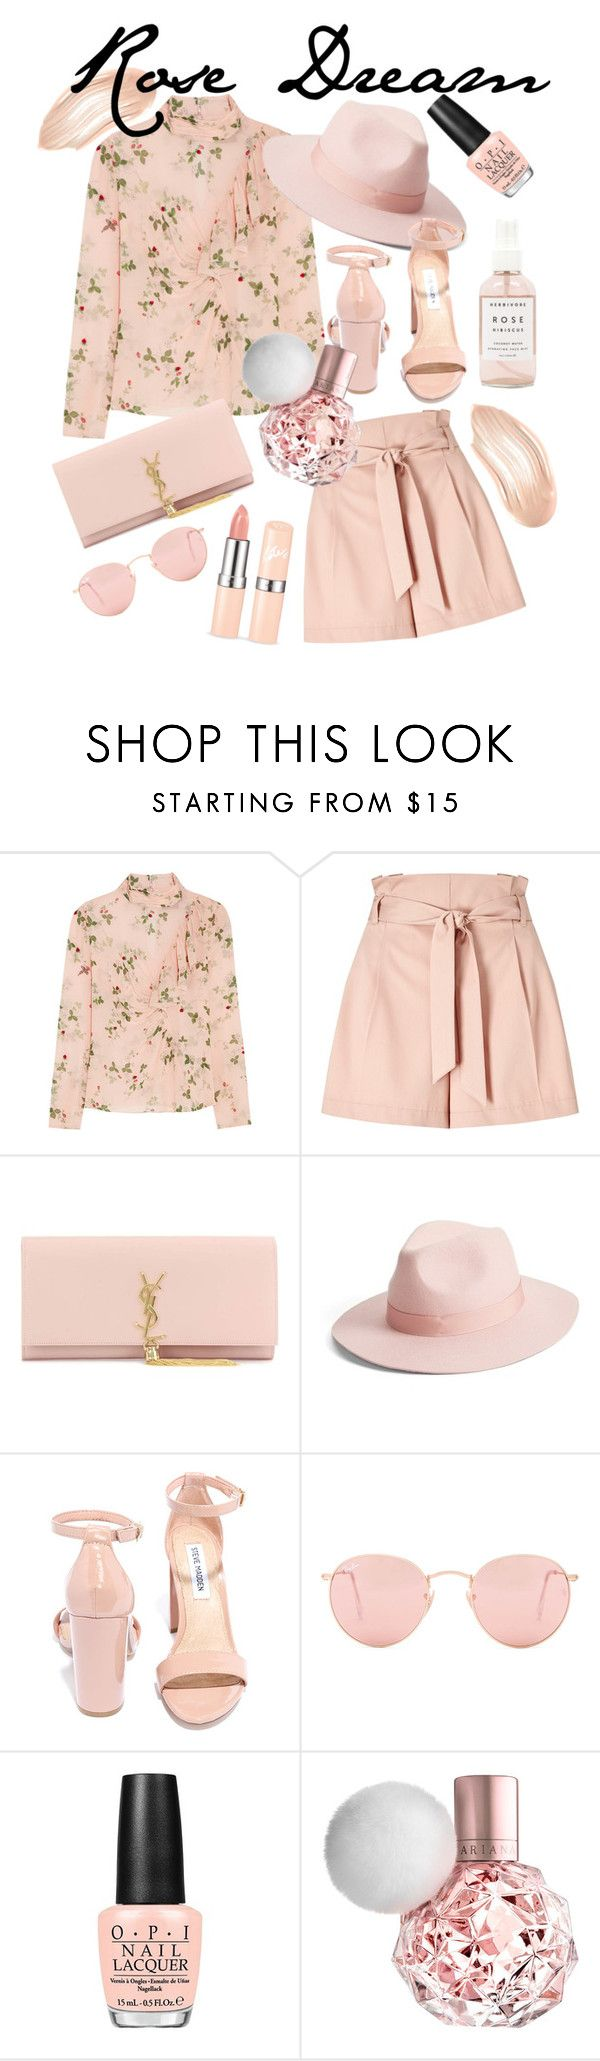 """Rose Dream"" by stylebycharlene on Polyvore featuring Topshop Unique, Miss Selfridge, Yves Saint Laurent, Lack of Color, Steve Madden, Ray-Ban, OPI and Herbivore"